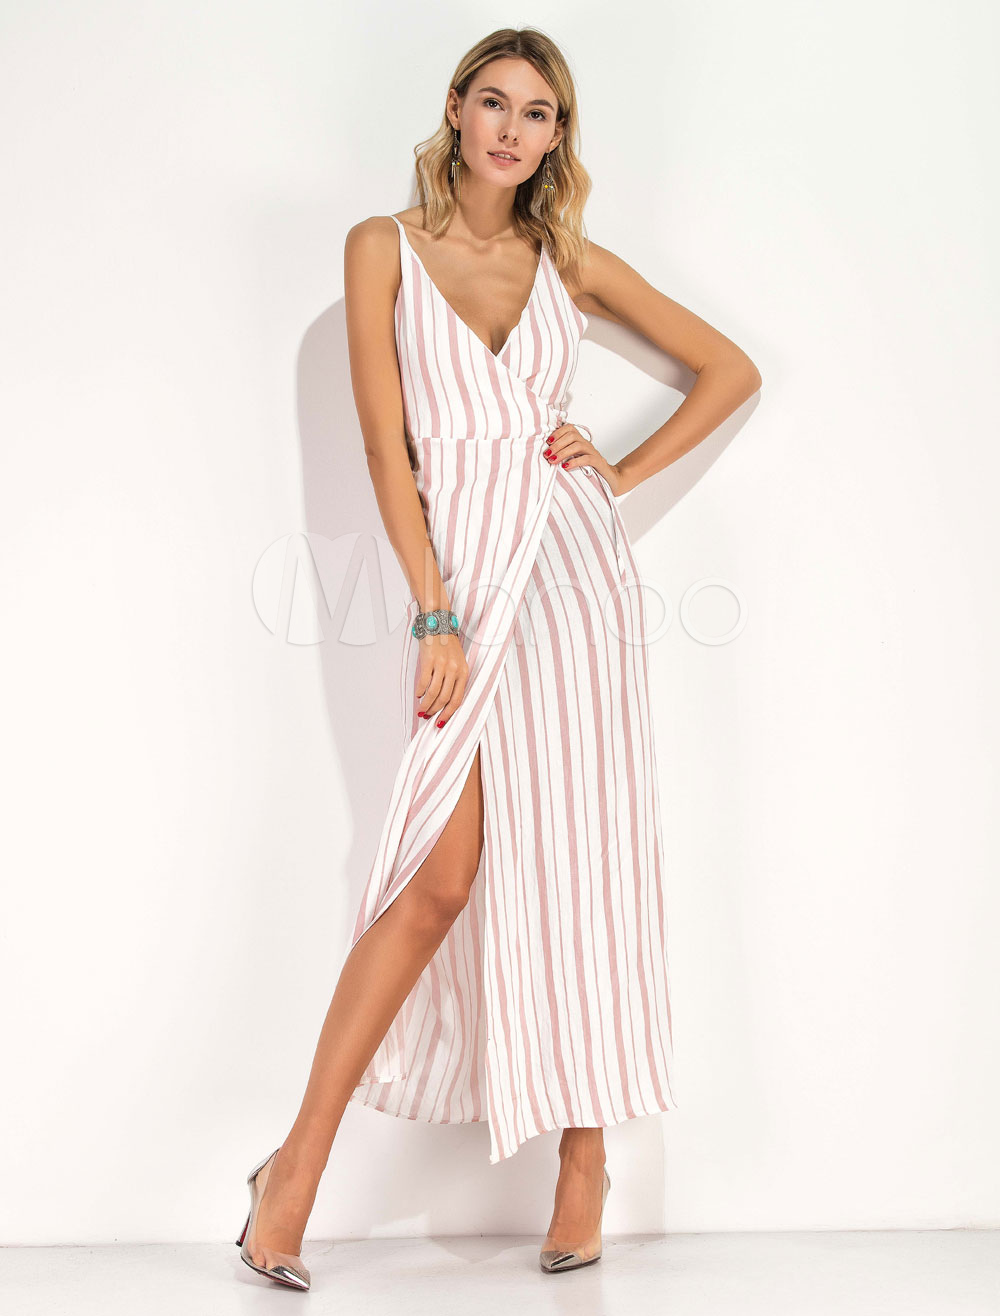 Buy Women's Maxi Dress Chiffon Blush Pink Striped Strappy V Neck Sleeveless Slit Long Dress for $28.49 in Milanoo store